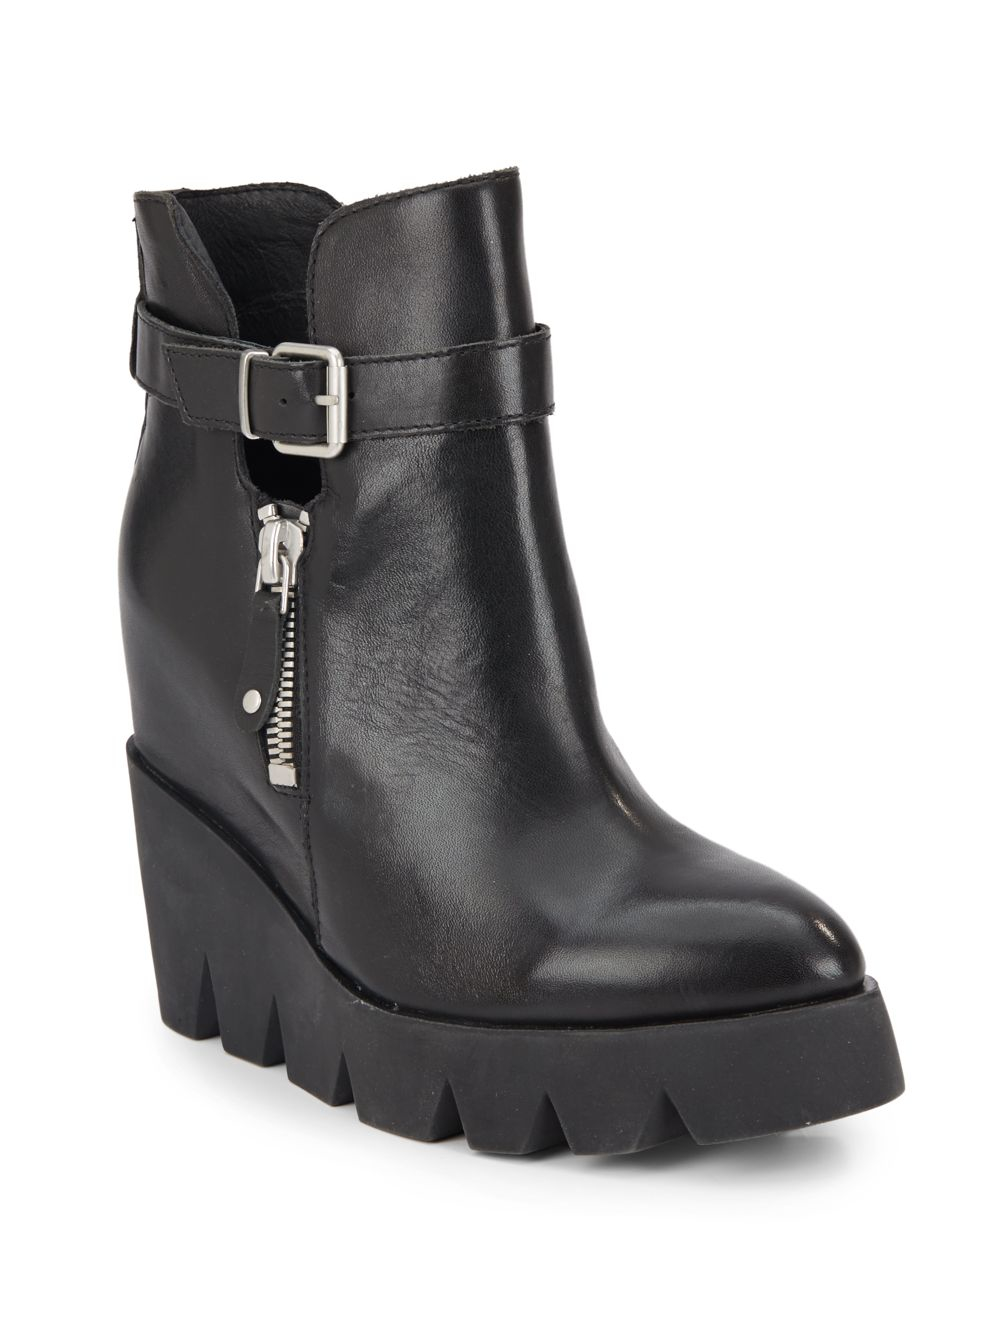 Ash Ricky Leather Wedge Ankle Boots in Black | Lyst